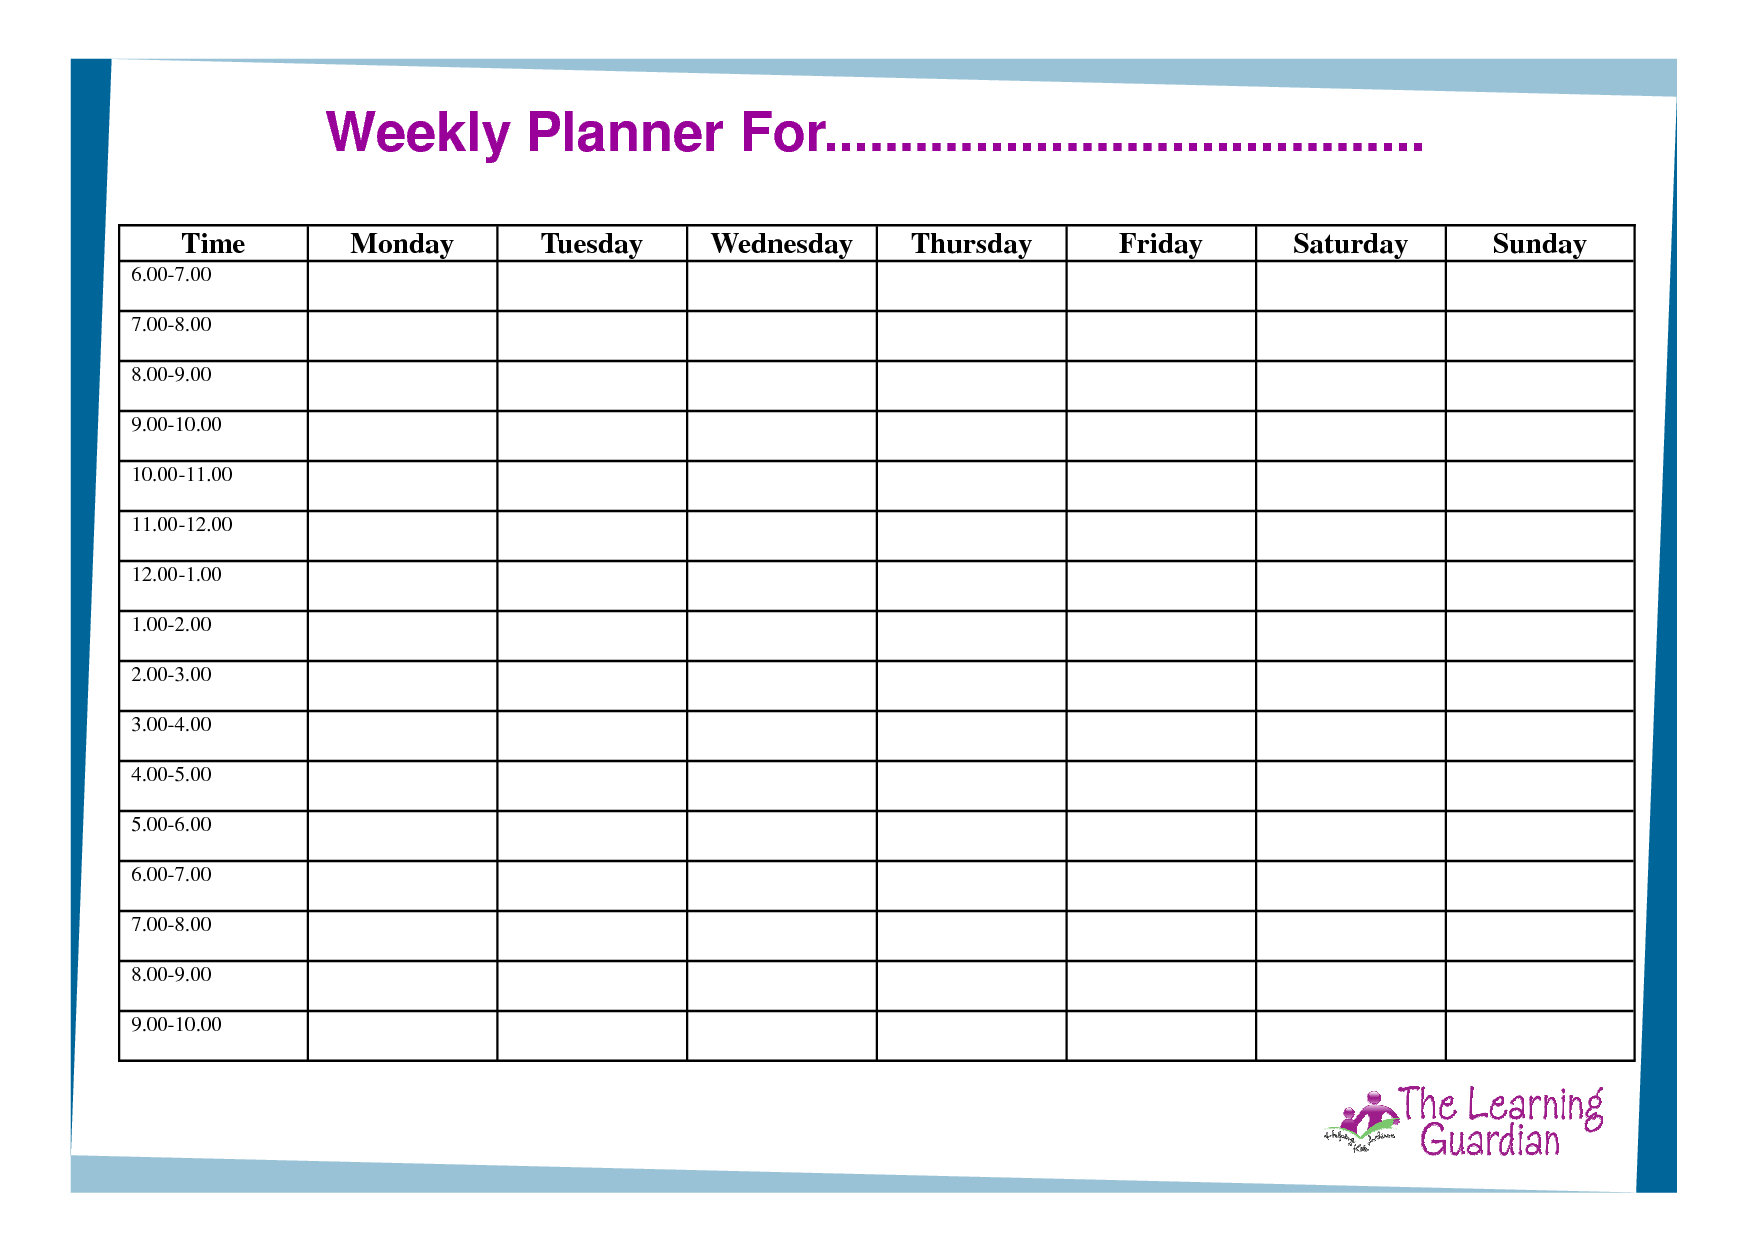 Free Printable Weekly Calendar Templates   Weekly Planner For Time inside Free Calendar Agenda Template